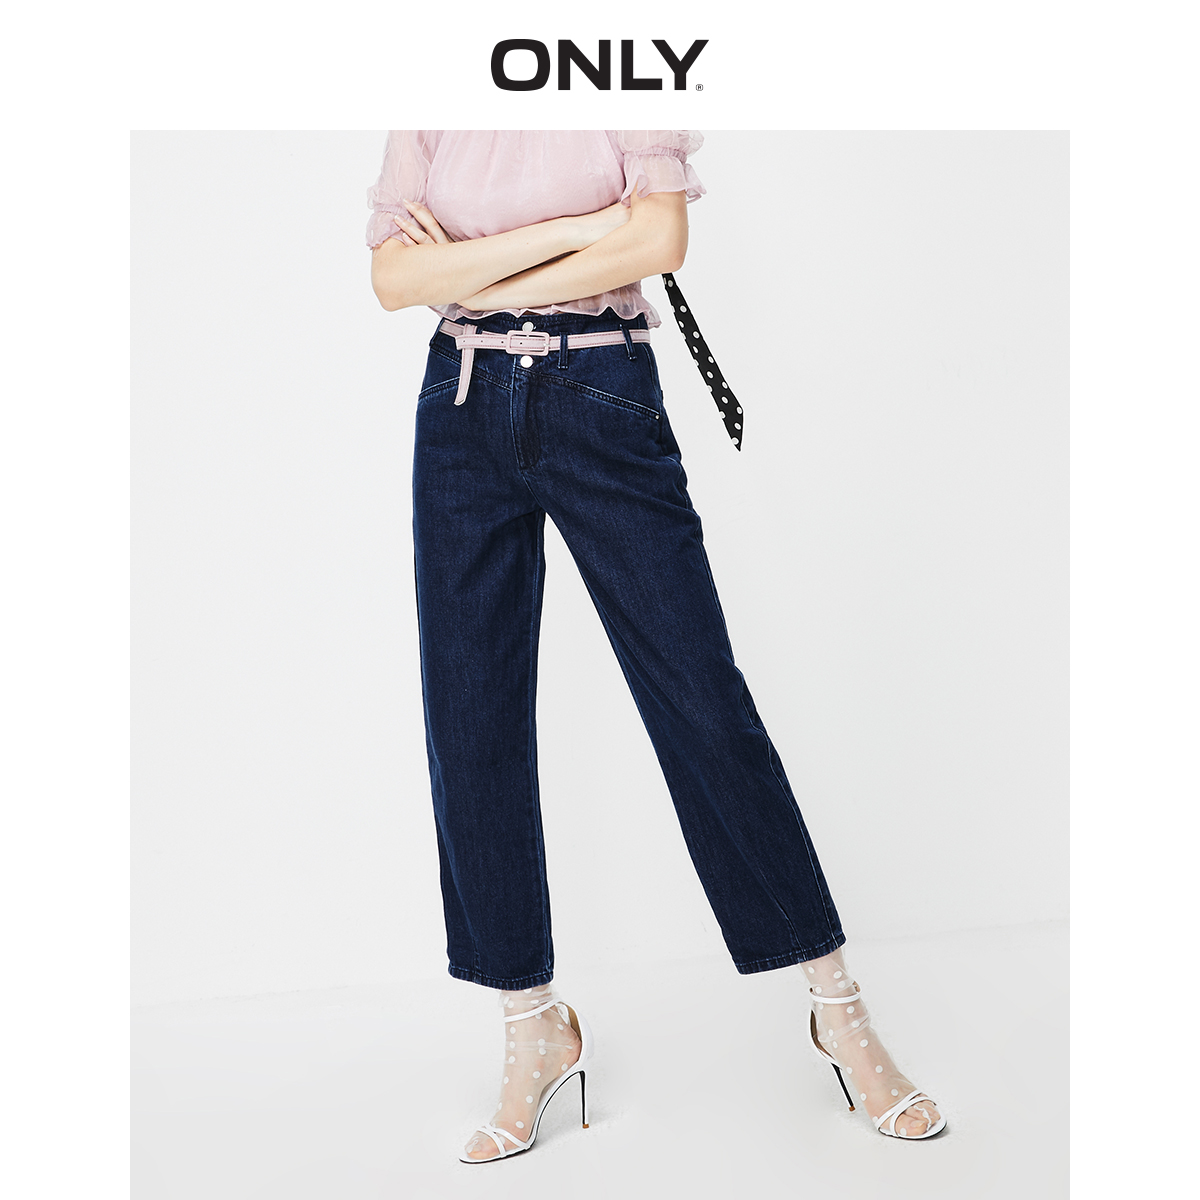 ONLY Women's Straight Fit High-rise Crop Jeans | 119149537